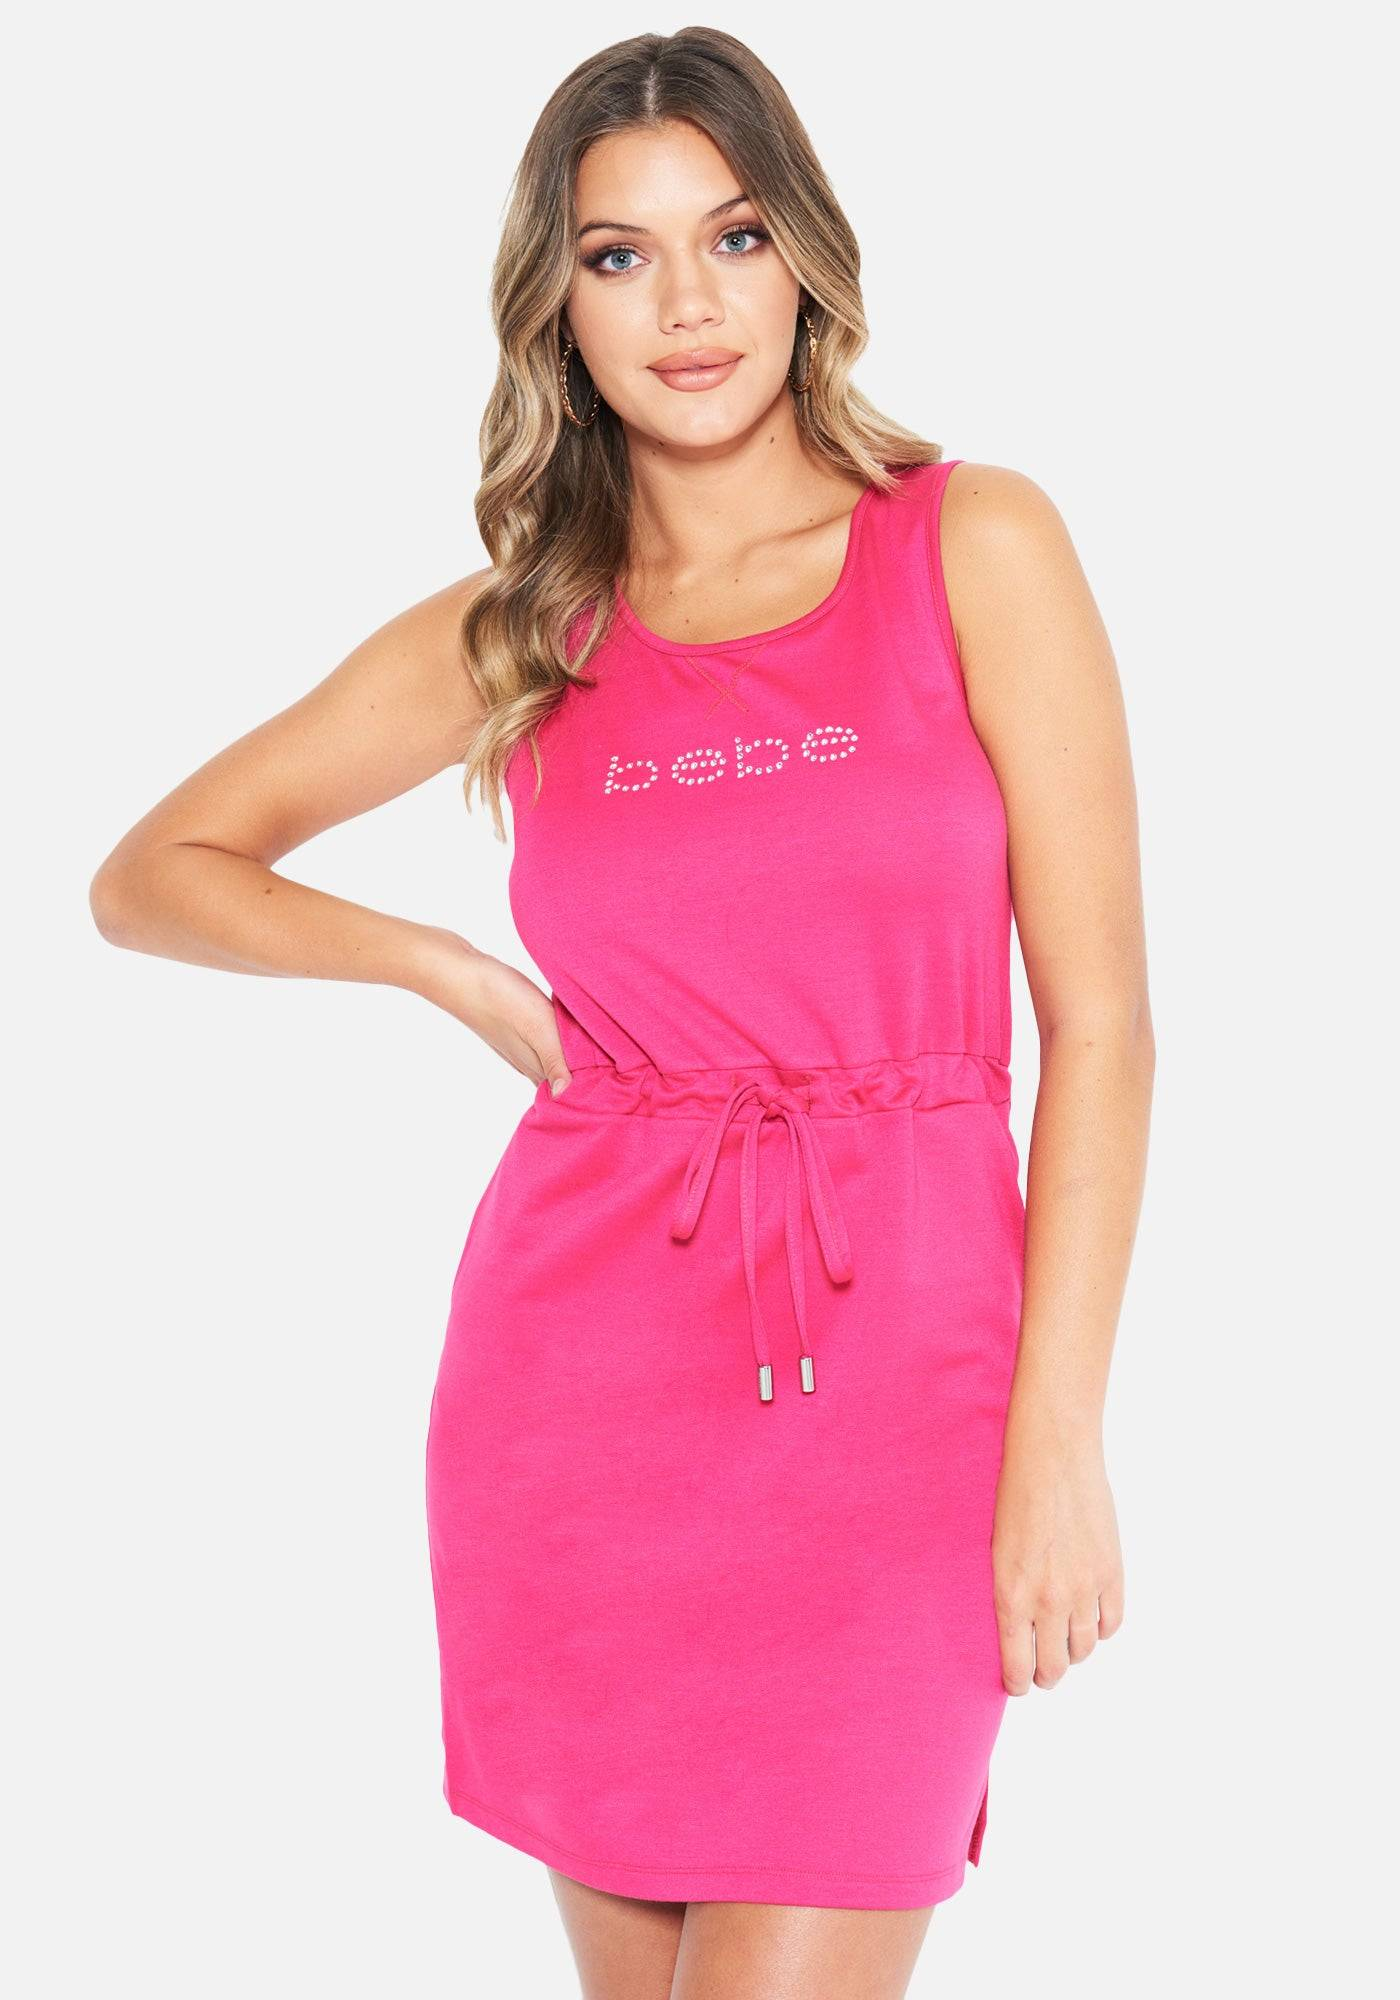 Bebe Women's French Terry Tank Dress, Size Large in Beet Root Spandex